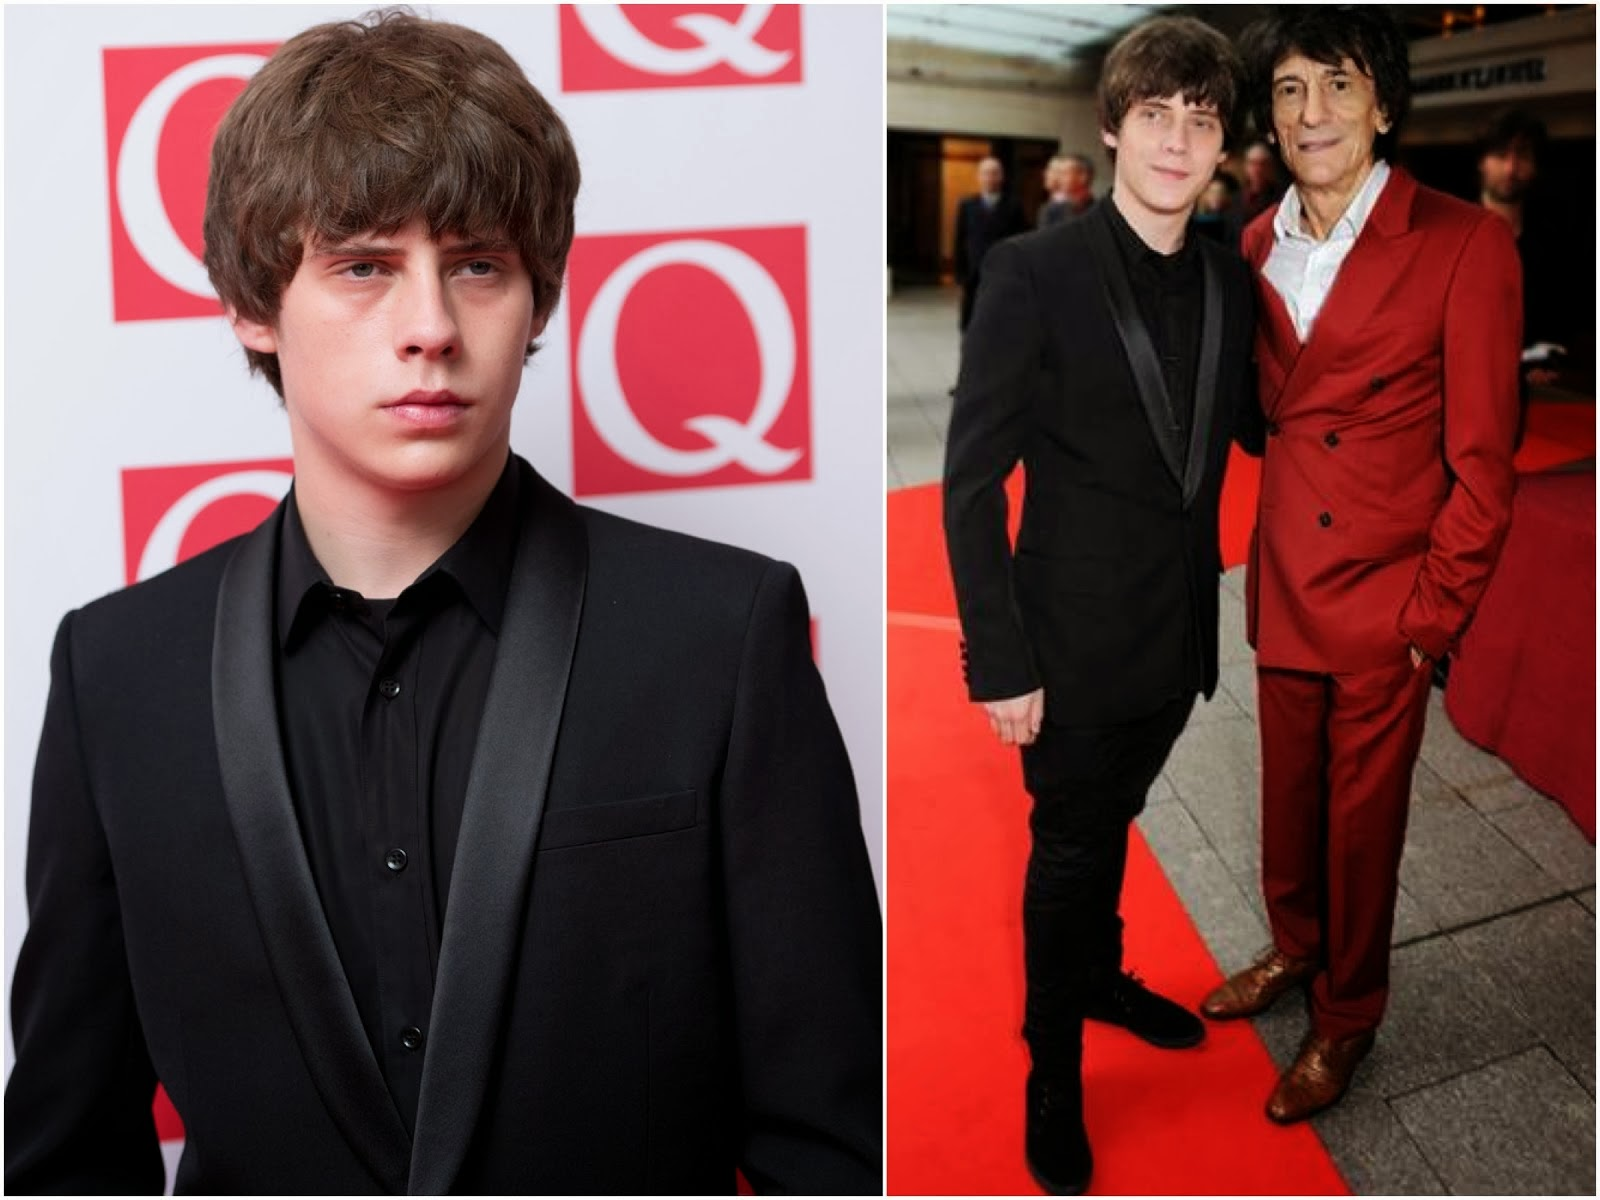 00O00 Menswear Blog: Jake Bugg in Saint Laurent - Q Awards 2013, London